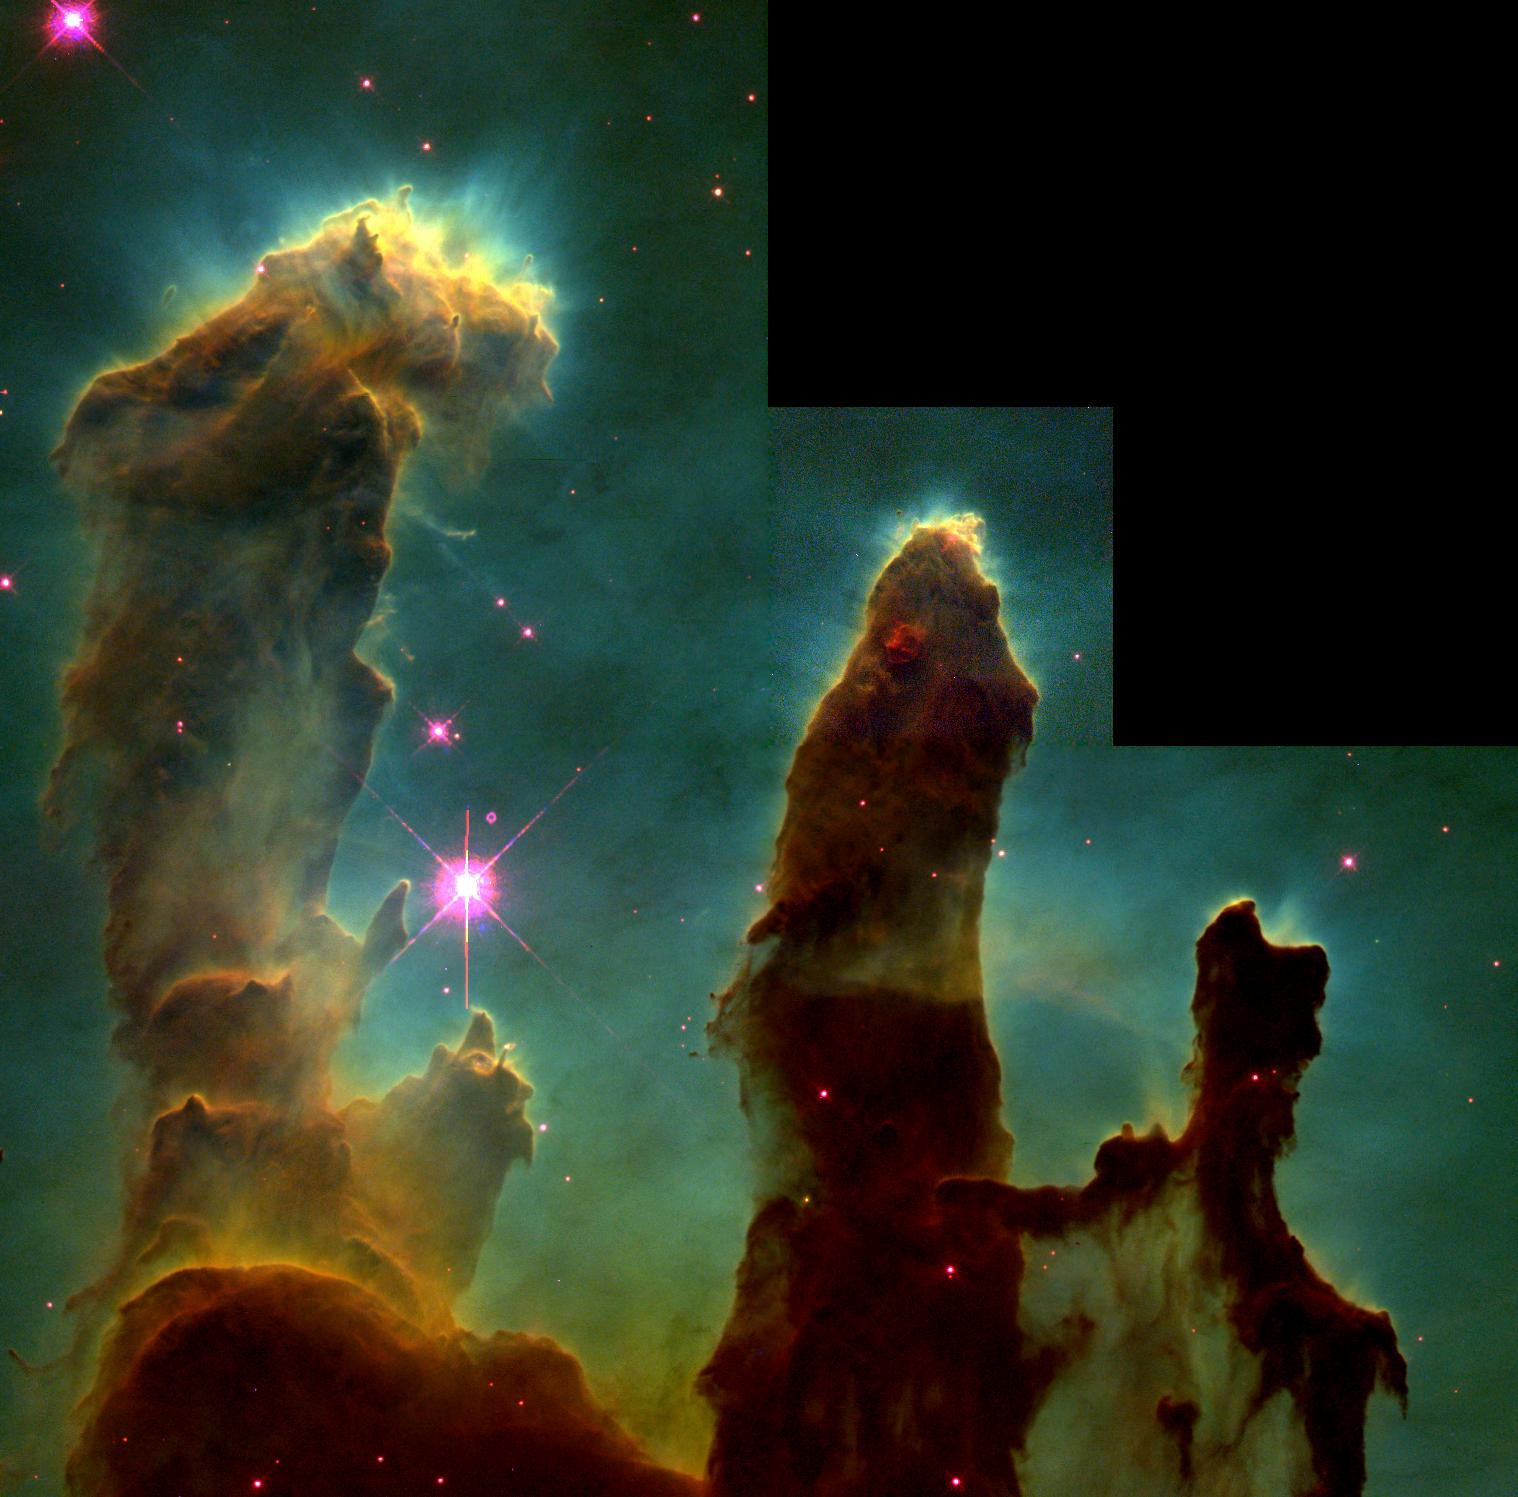 APOD Pillars of creation